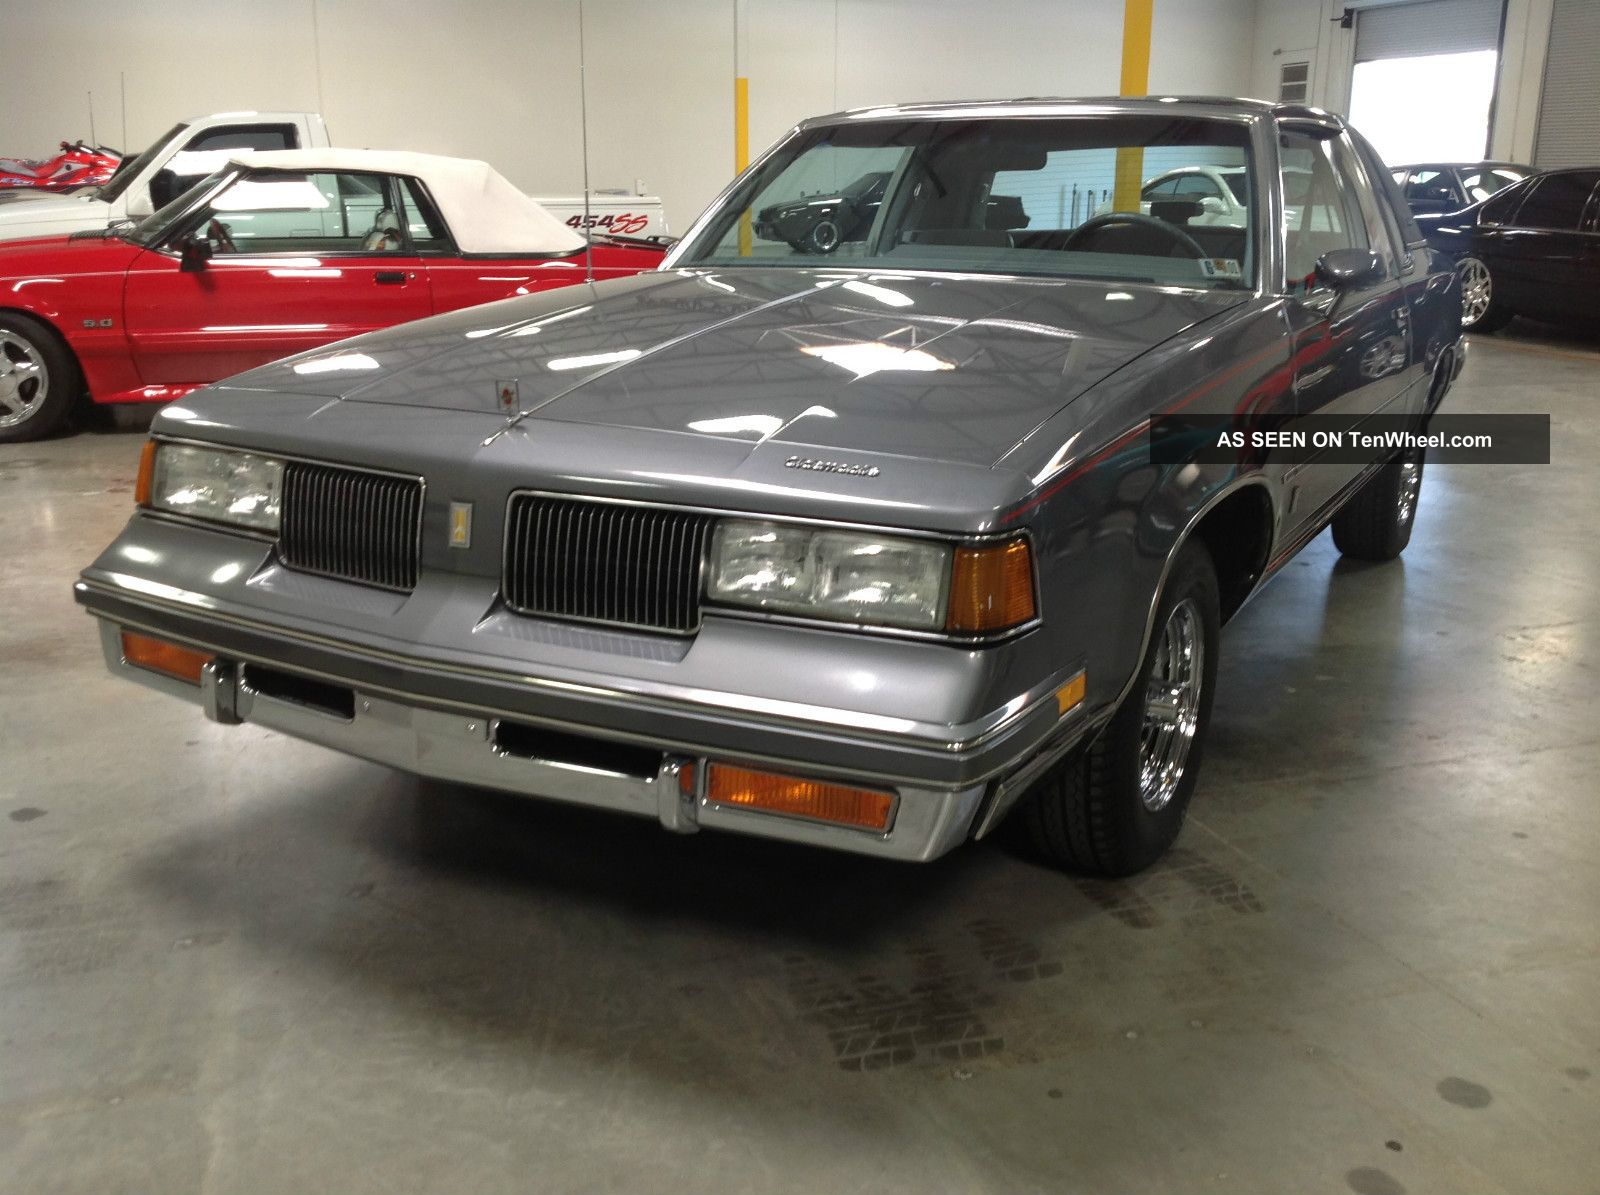 87 cutl engine wiring diagram wiring diagrams 1987 Cutlass Supreme Wiring Diagram 1987 cutlass supreme wiring diagram